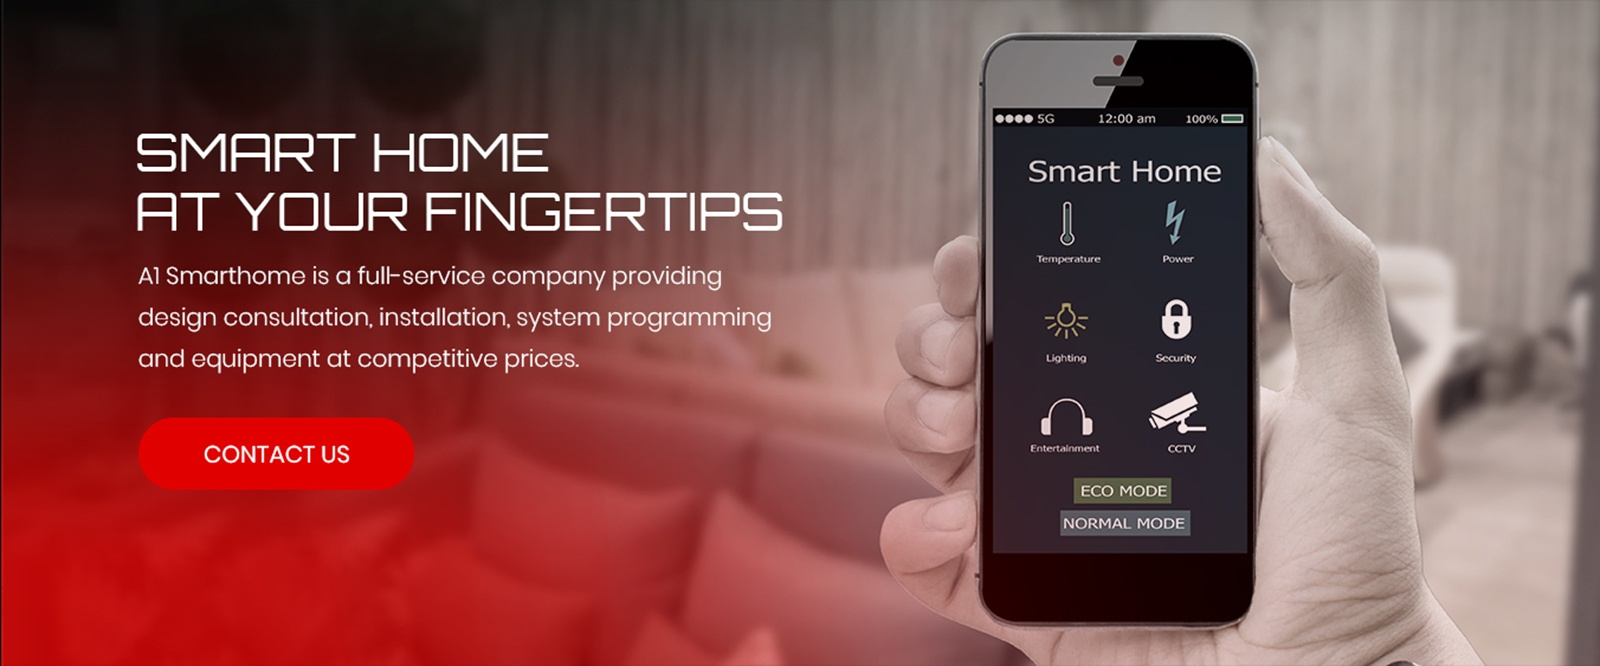 Smart Home at your fingertips